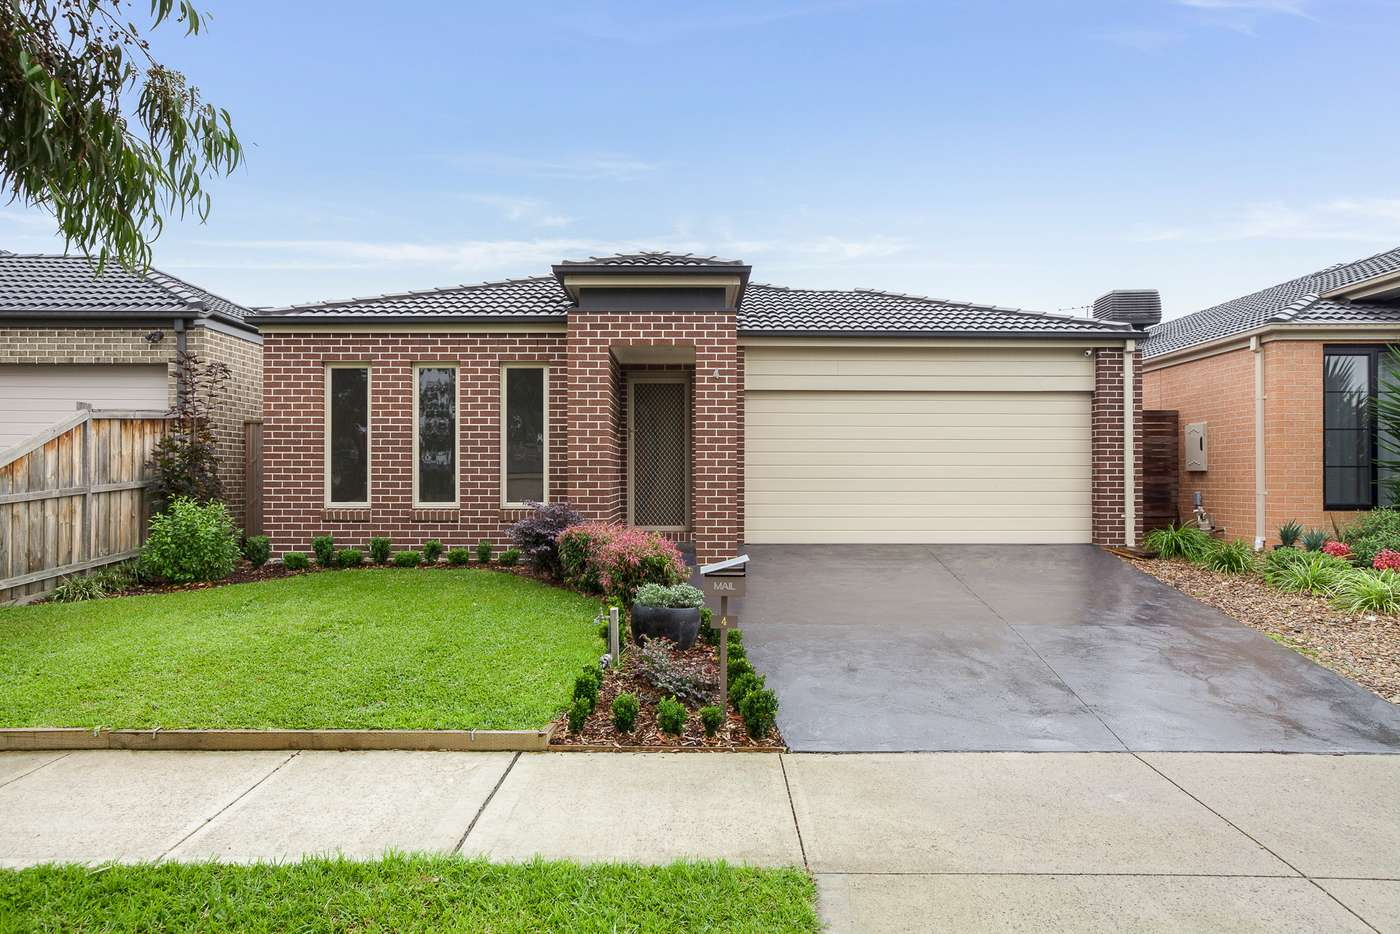 Main view of Homely house listing, 4 Tallulah Avenue, Doreen VIC 3754